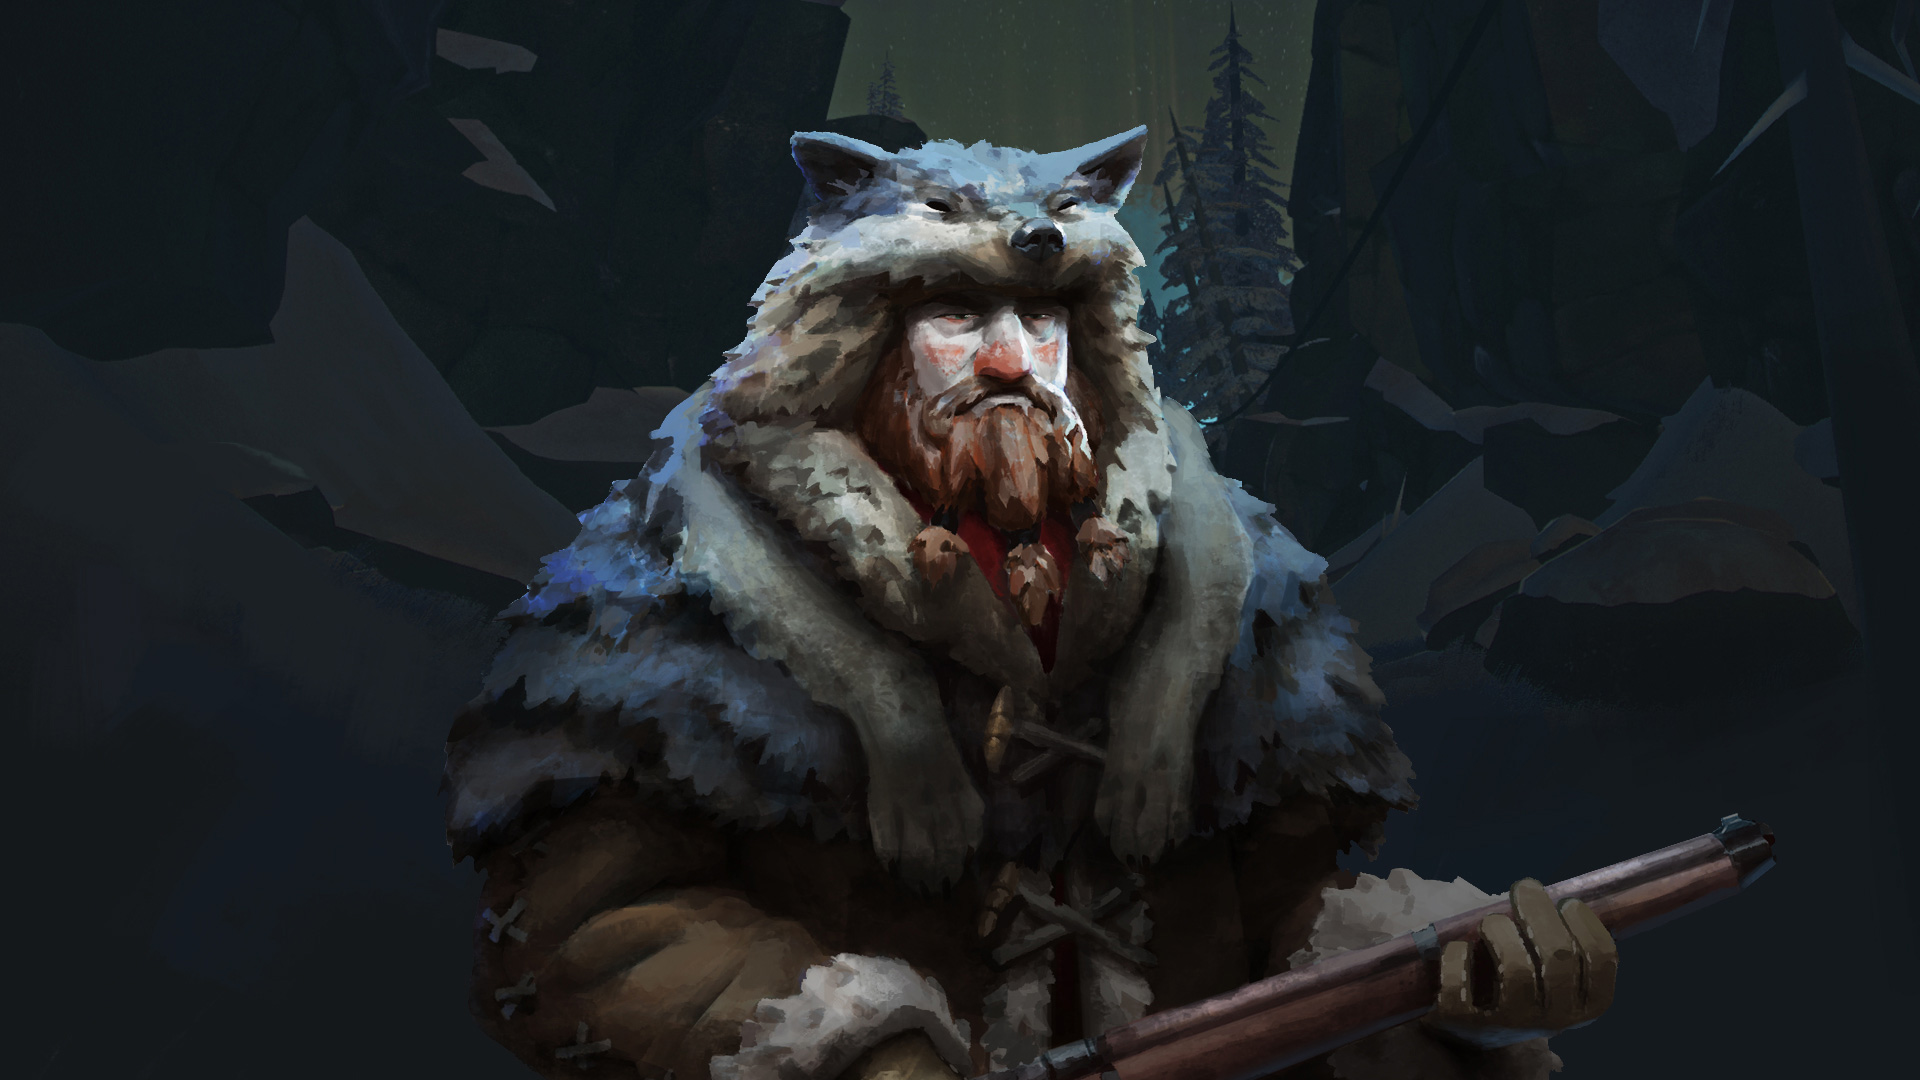 Free Download Jeremiah Wallpaper From The Long Dark